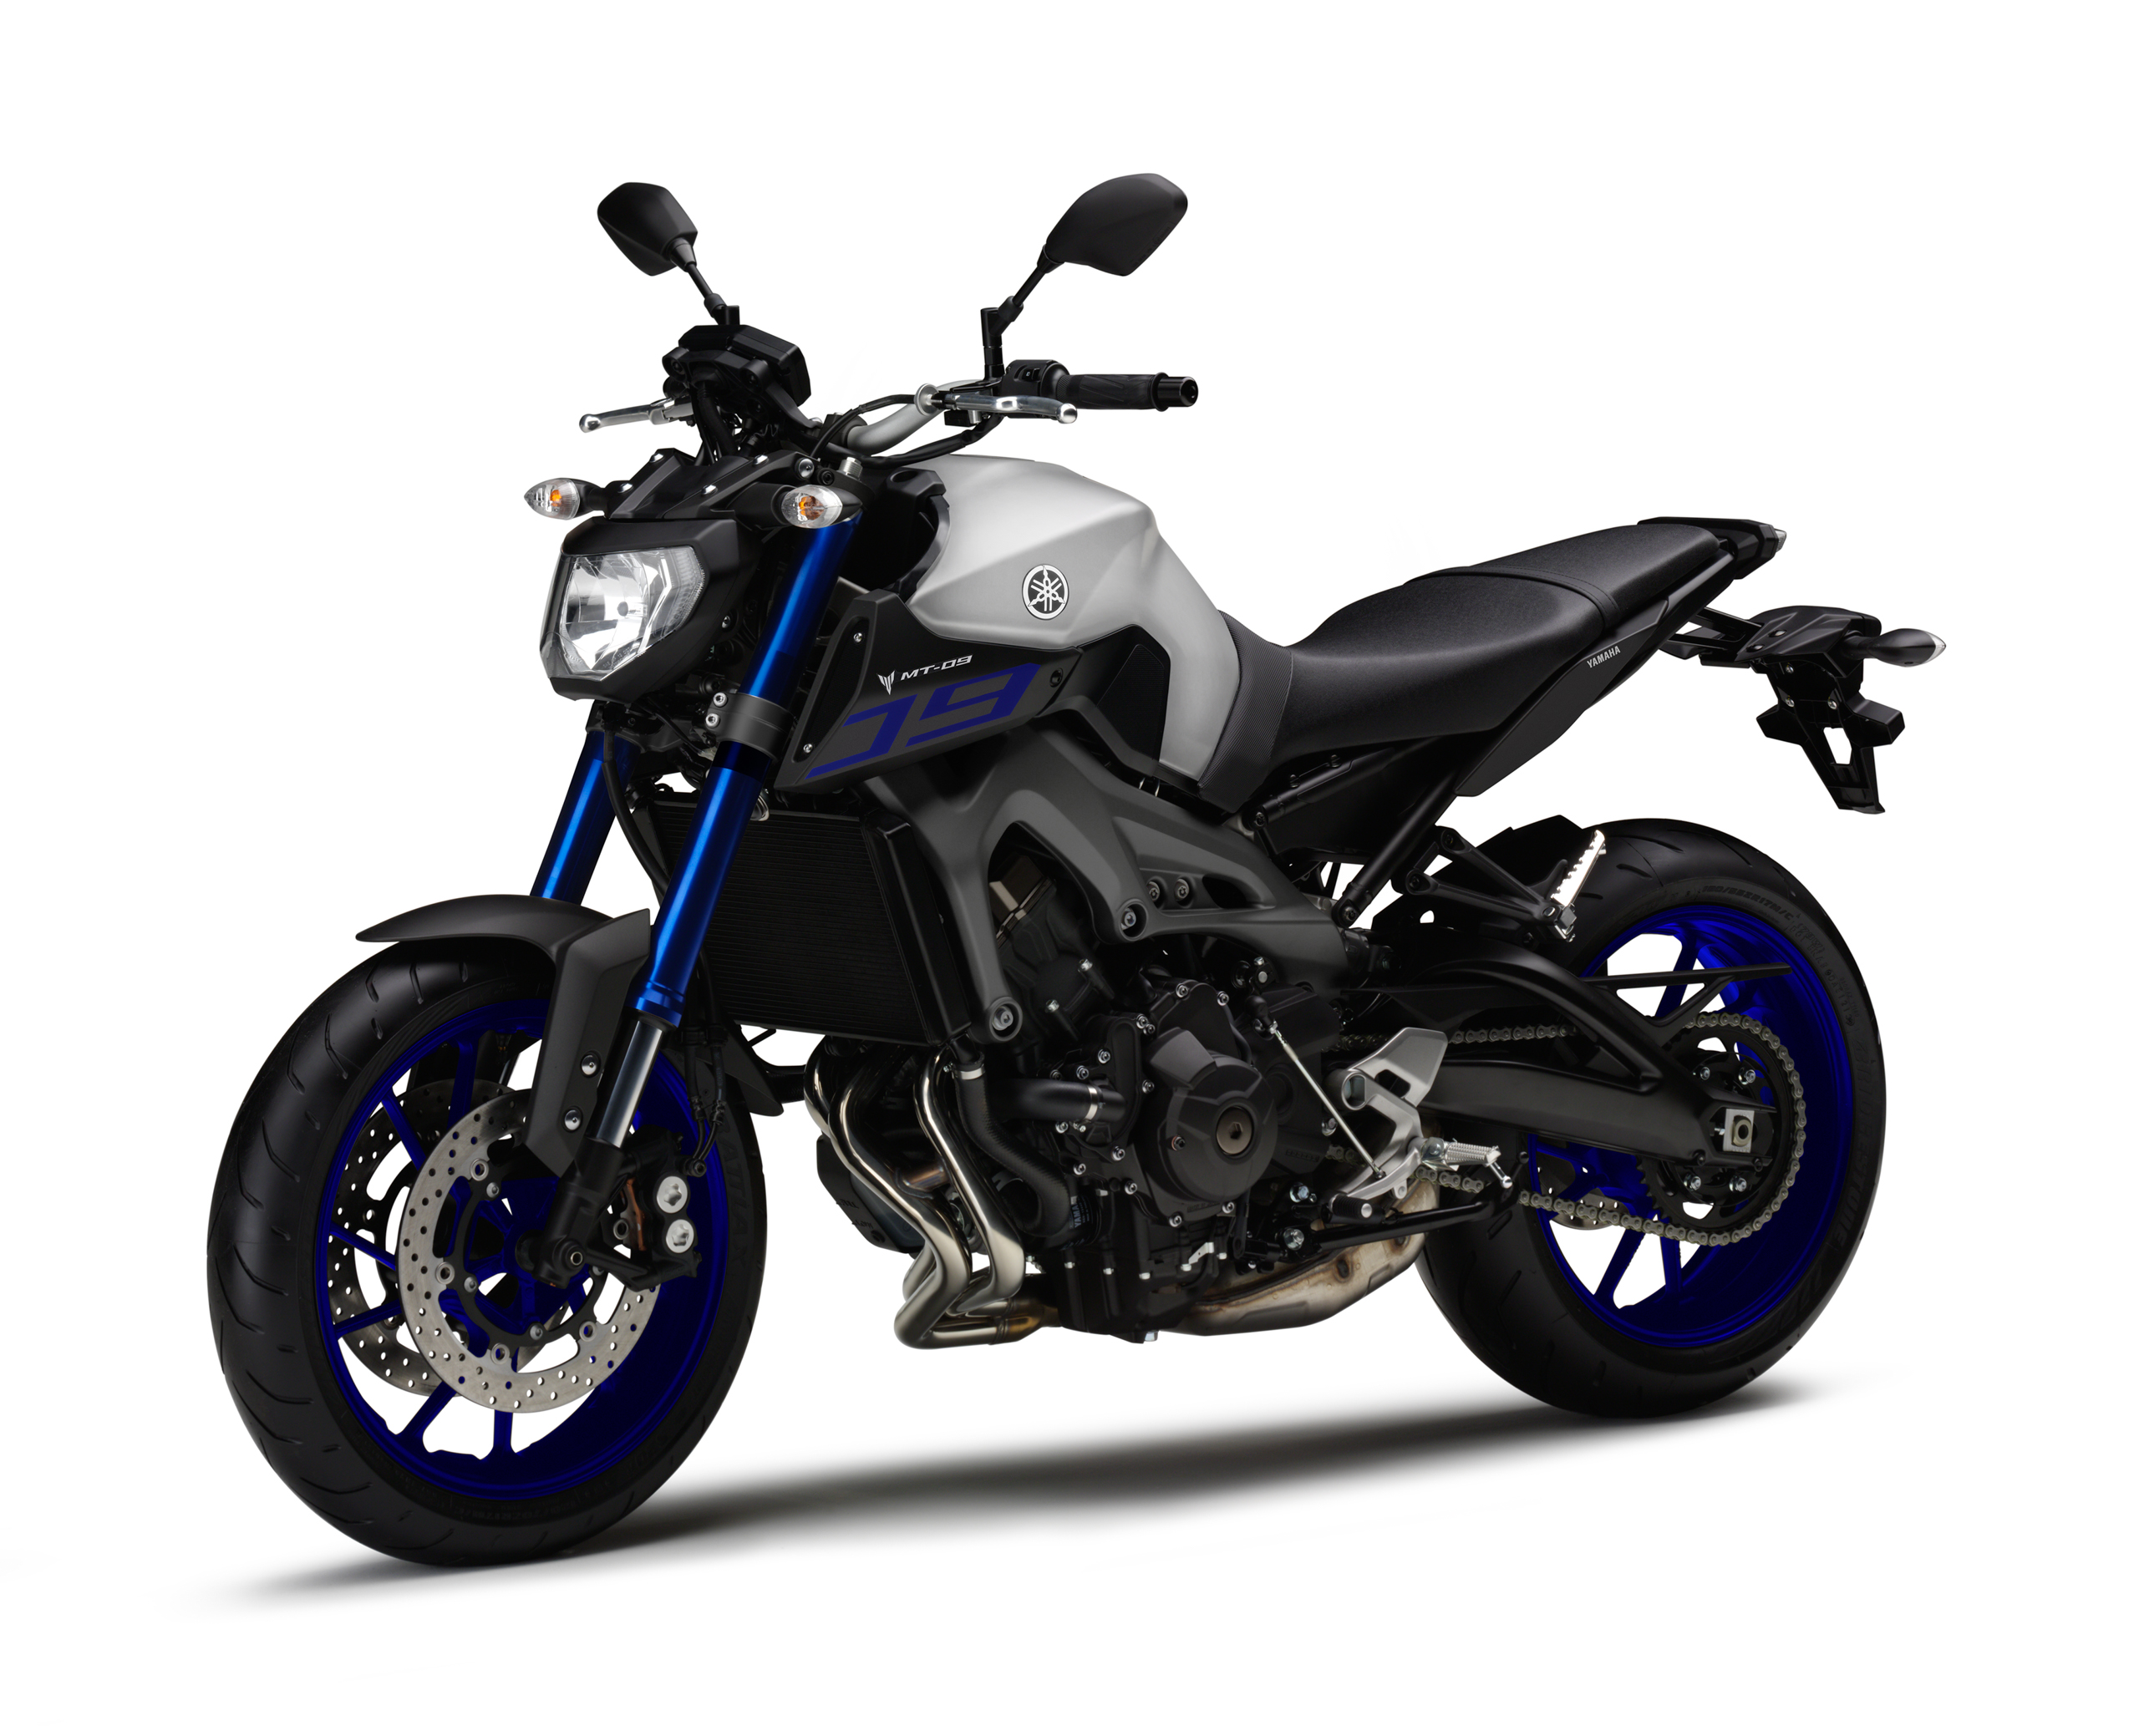 2016 yamaha mt 09 in malaysia new colours rm45k image 448723. Black Bedroom Furniture Sets. Home Design Ideas